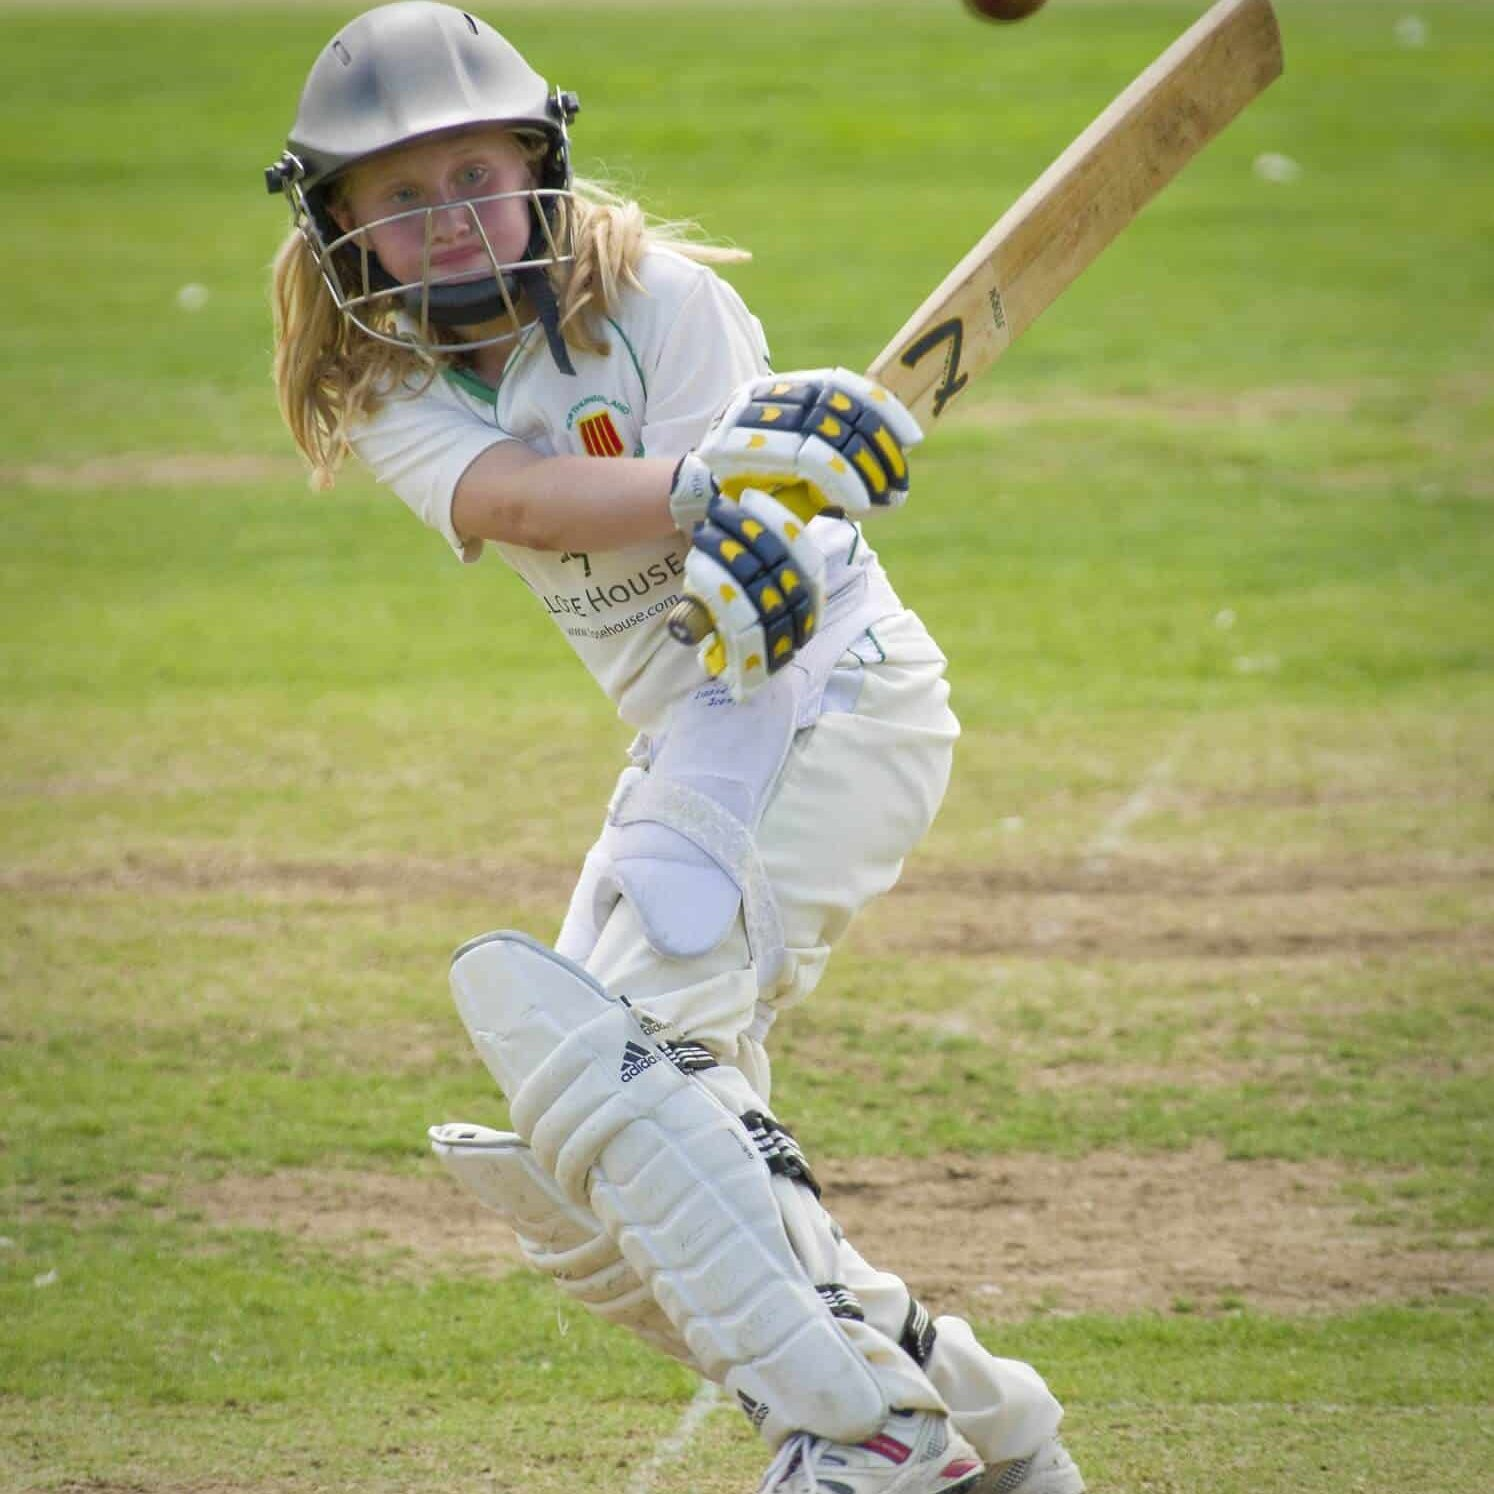 A Cricket Player hitting the ball with her bat